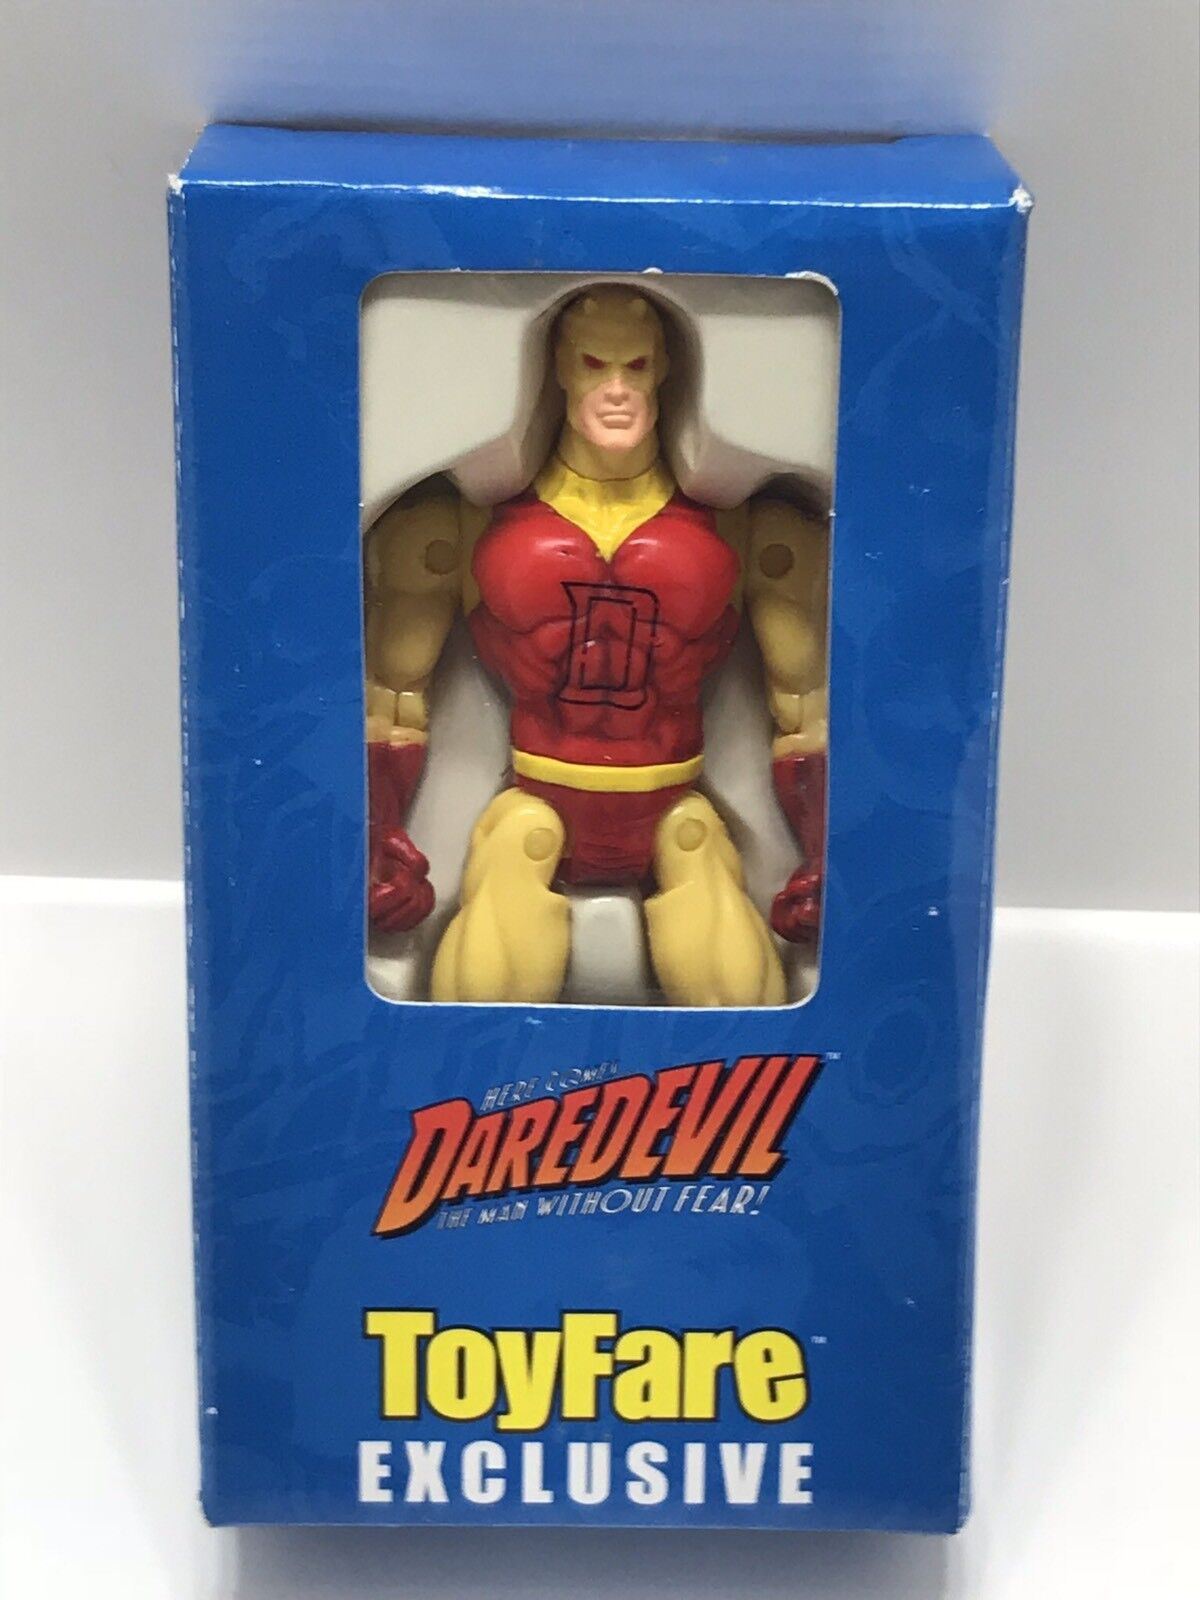 Vintage Toy Fare Exclusive Darotevil Action Figure By Marvel Comics Wizard Group